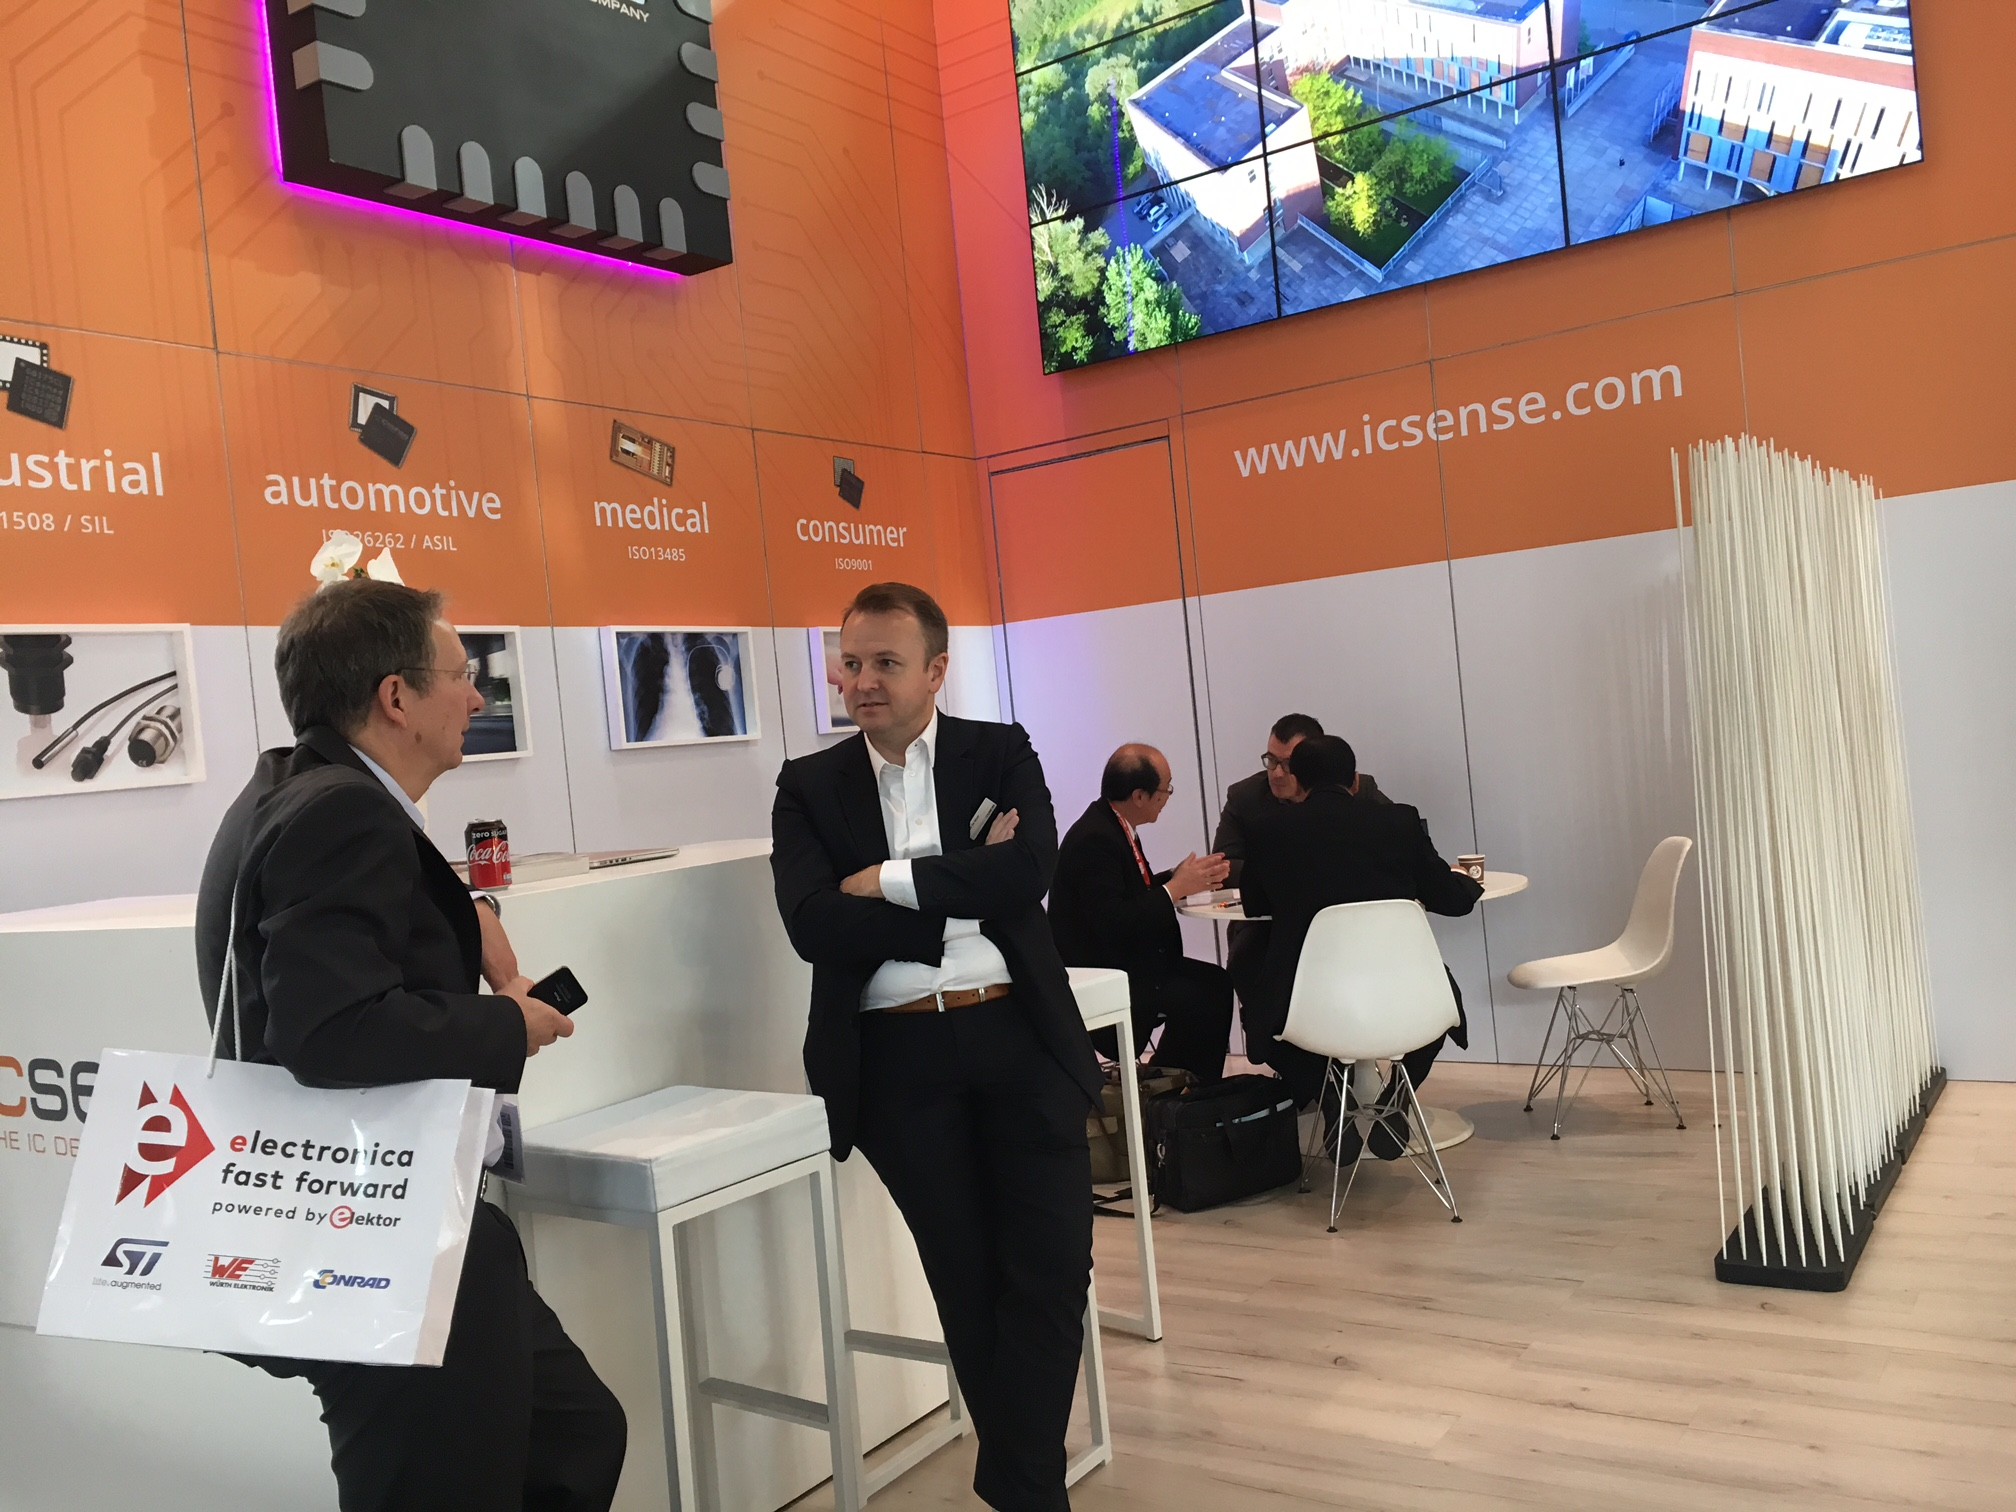 Embedded World 2017 | 14 – 16.03.17 (Hall 3 – 121)